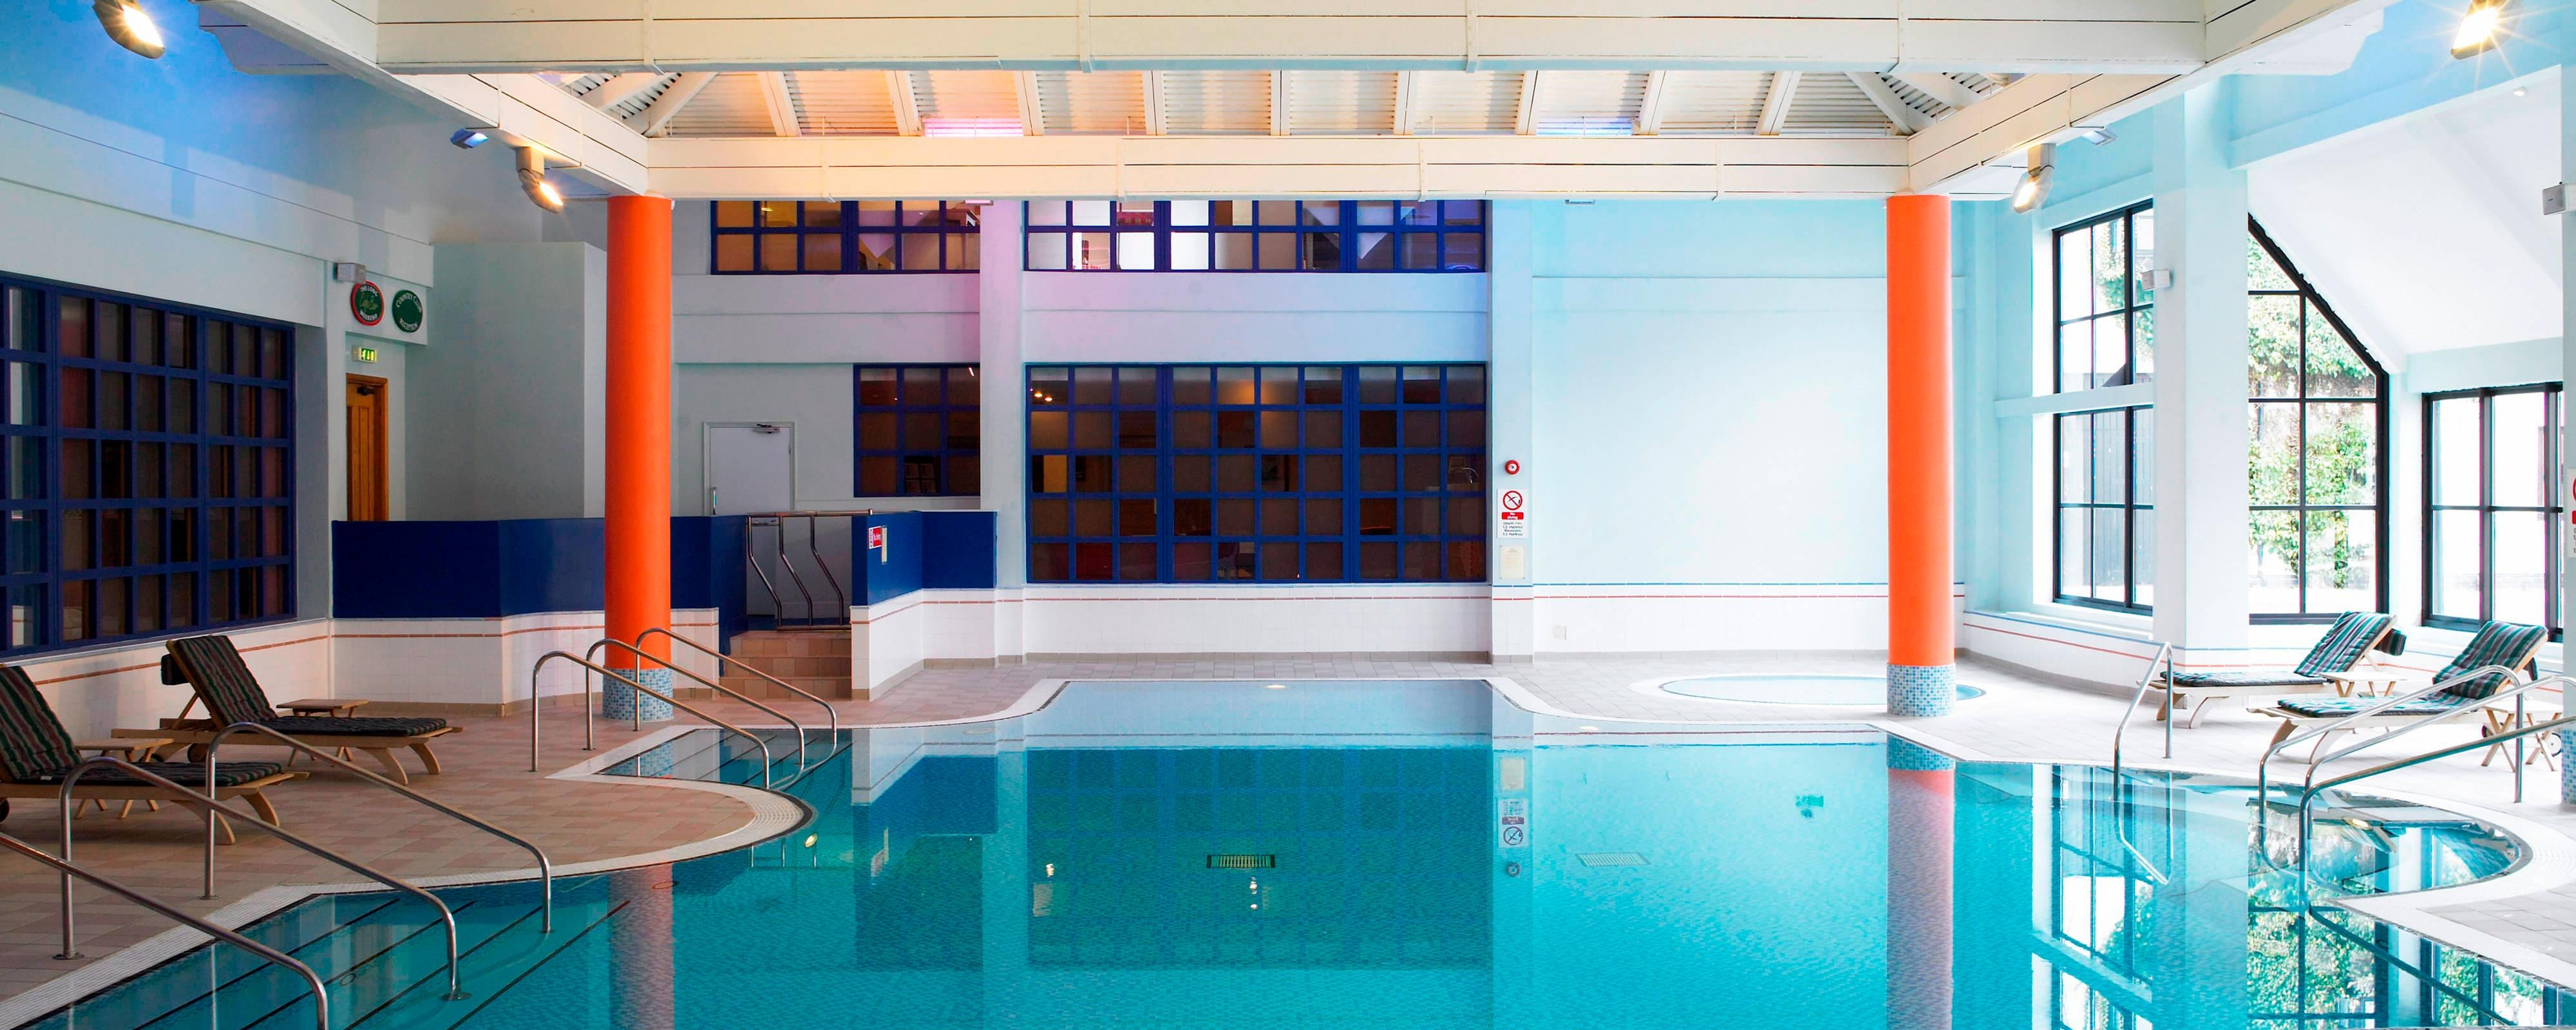 Hotels With Pools Midlands